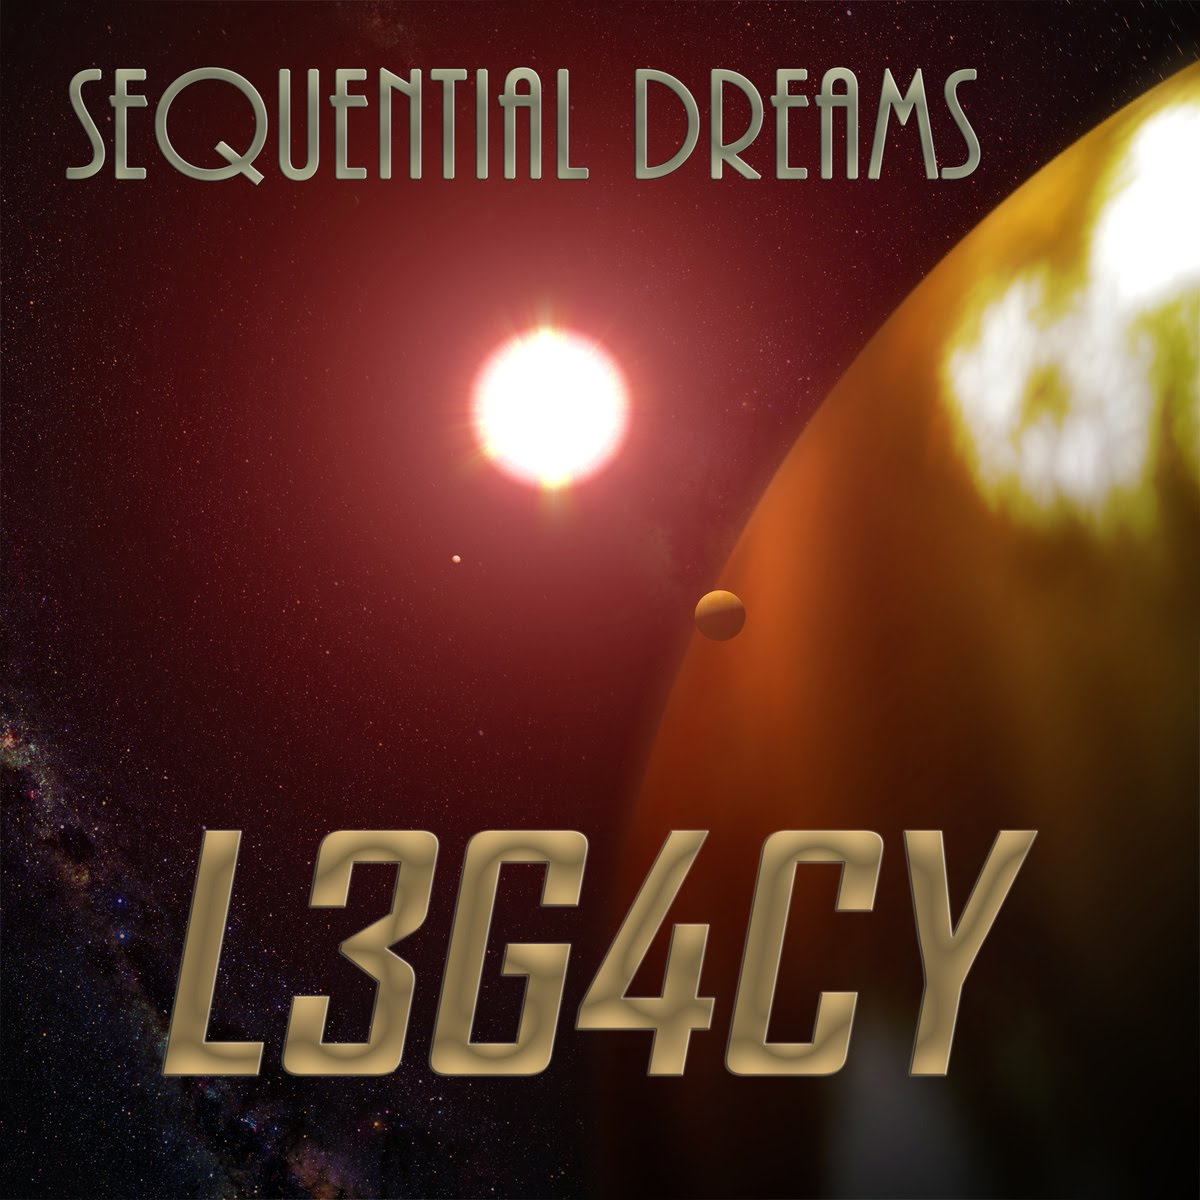 http://www.cdbaby.com/cd/sequentialdreams5